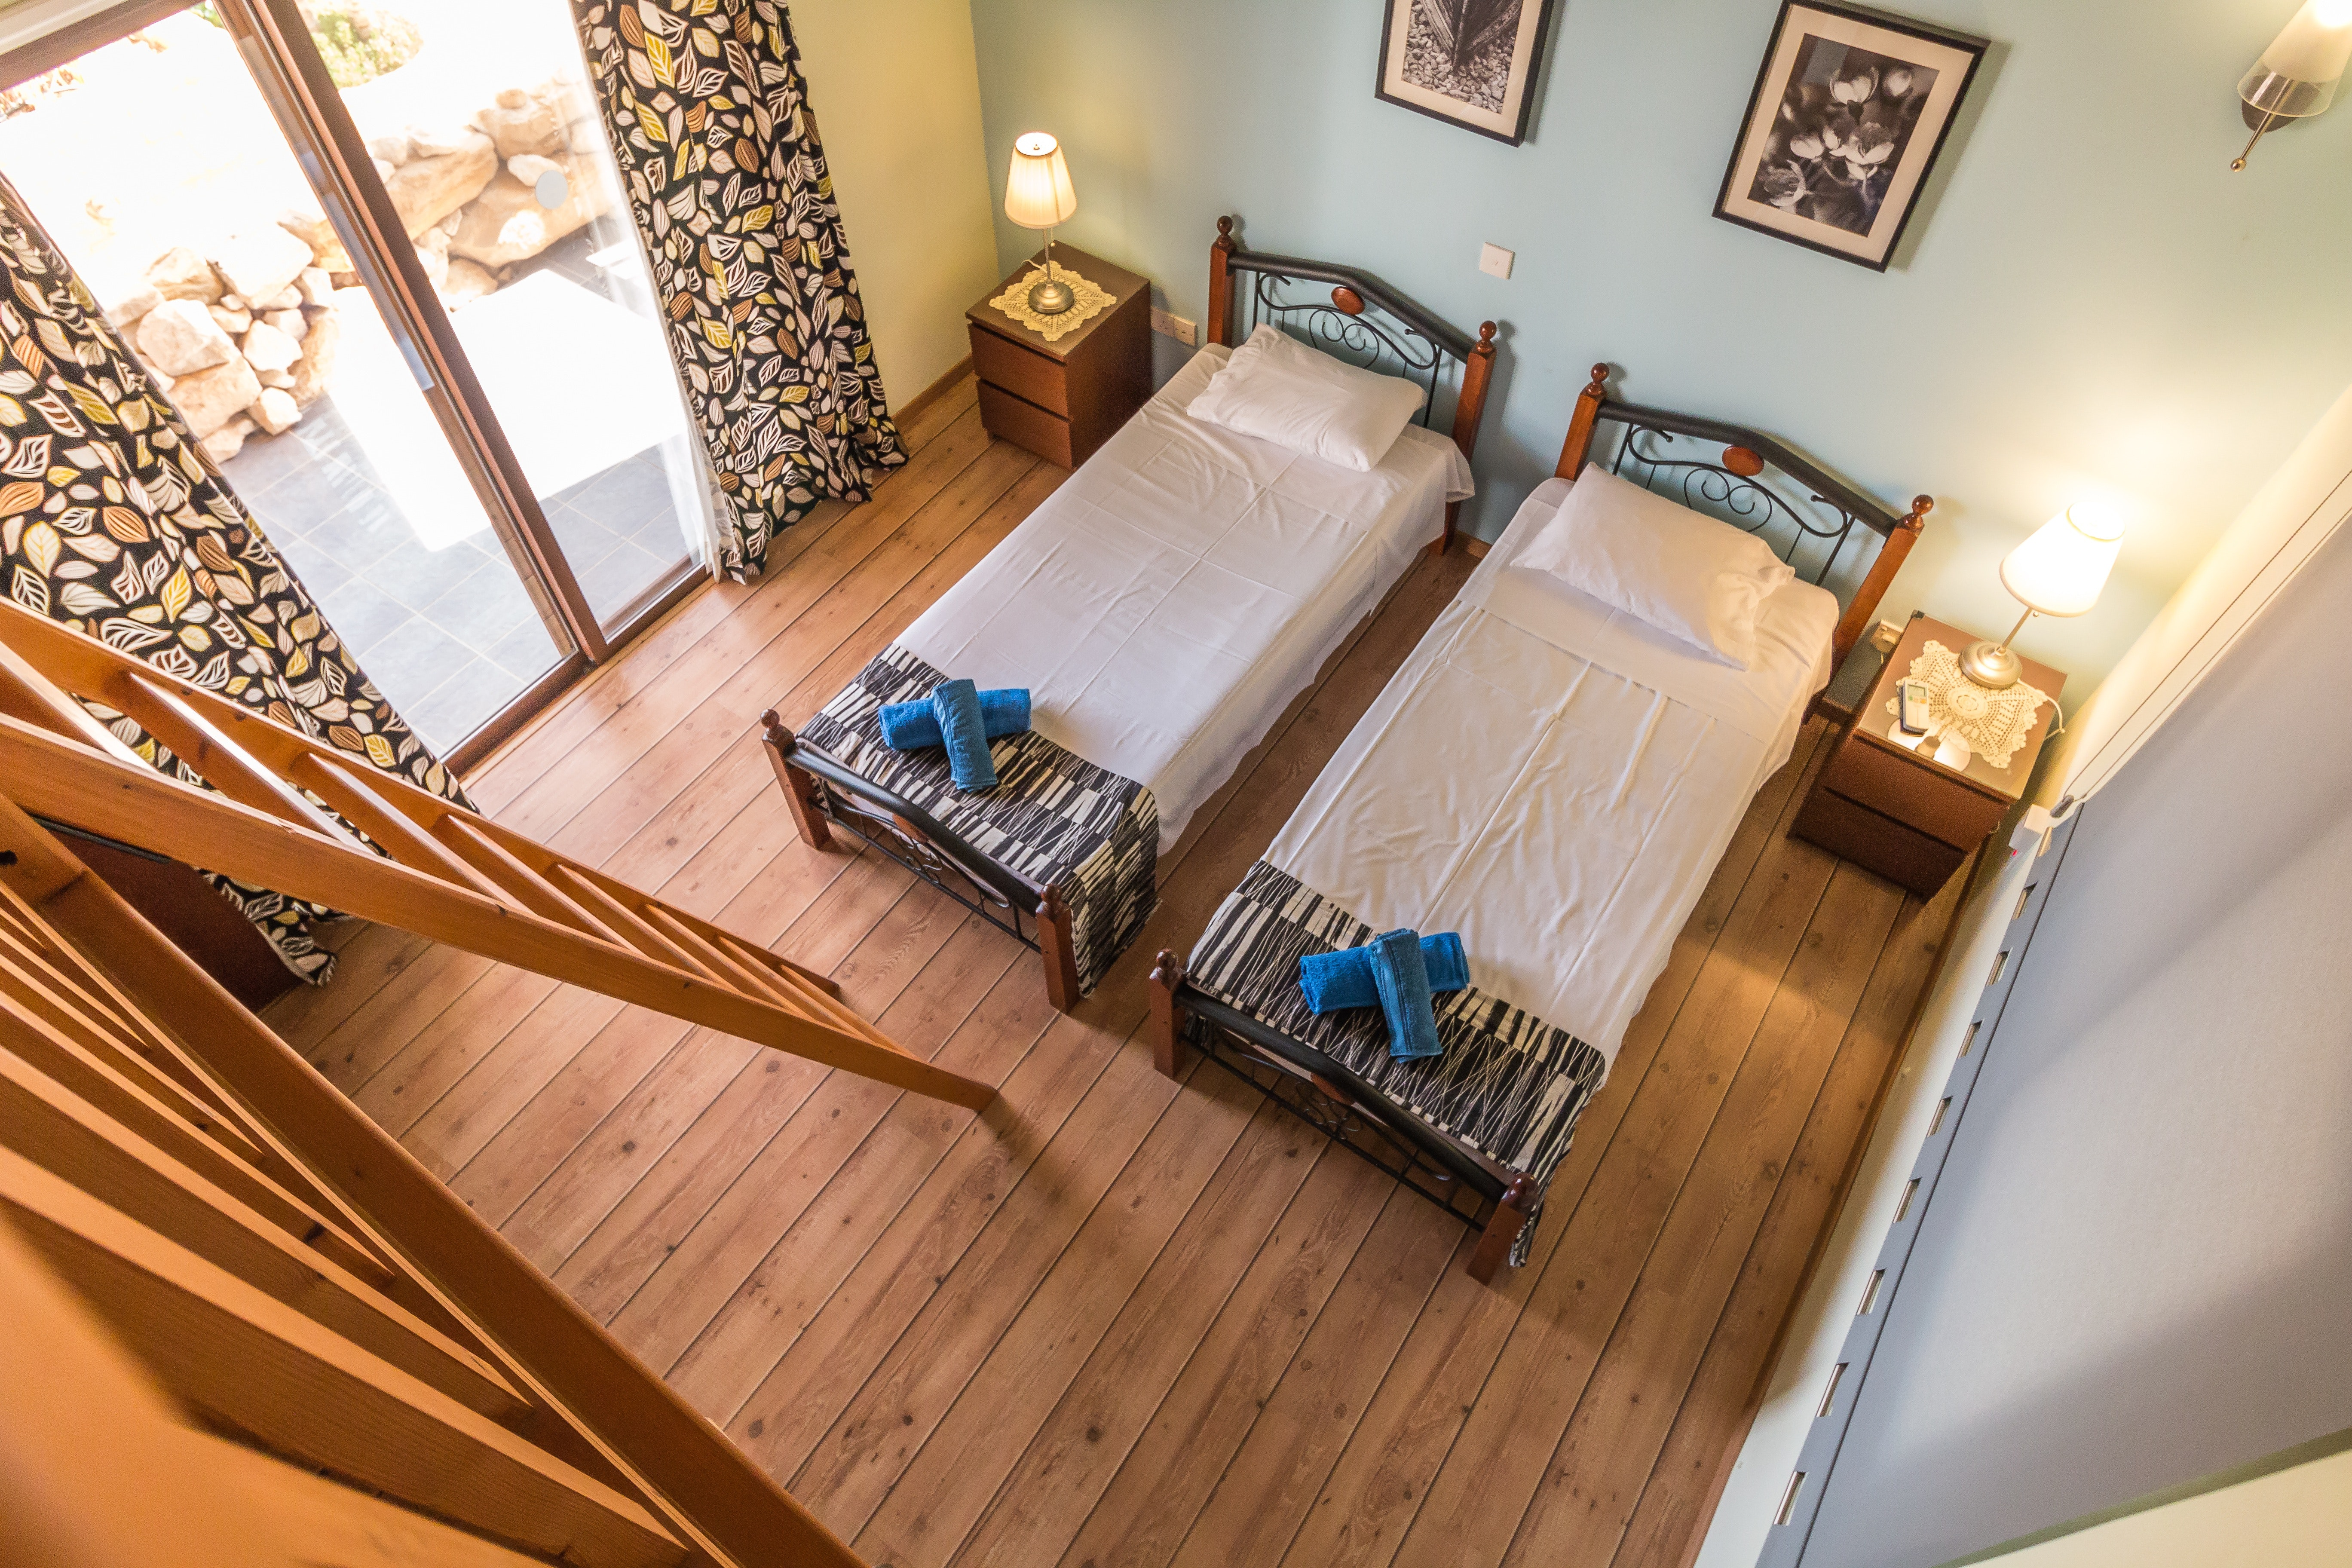 Bedroom interior with upgraded wood flooring